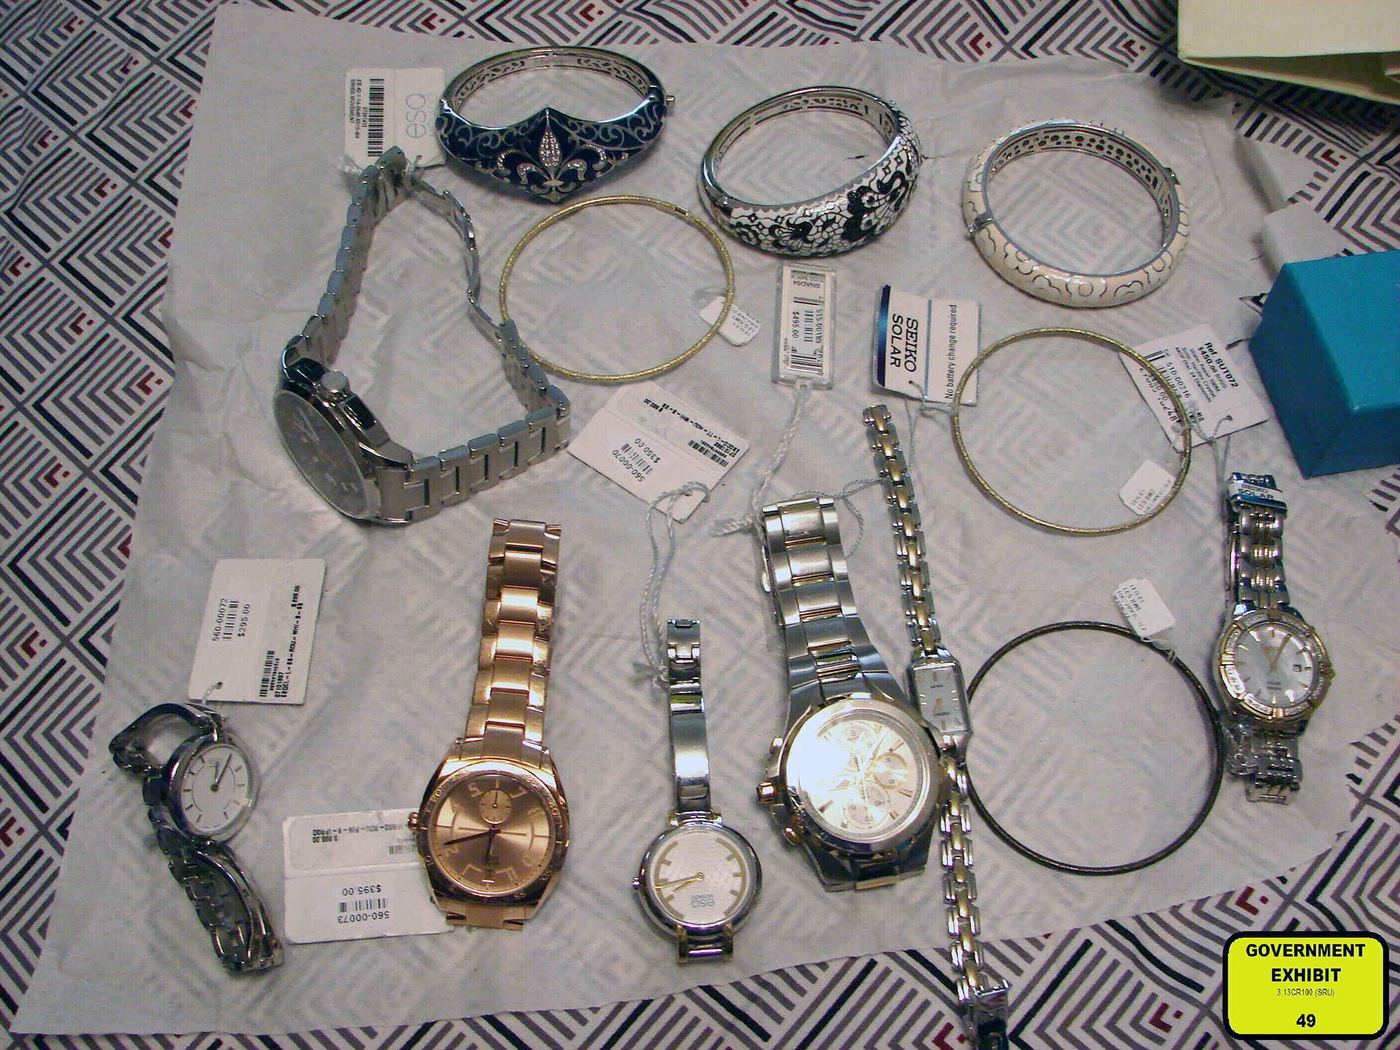 Recovered Jewelry Stolen in 2013 Connecticut Robbery